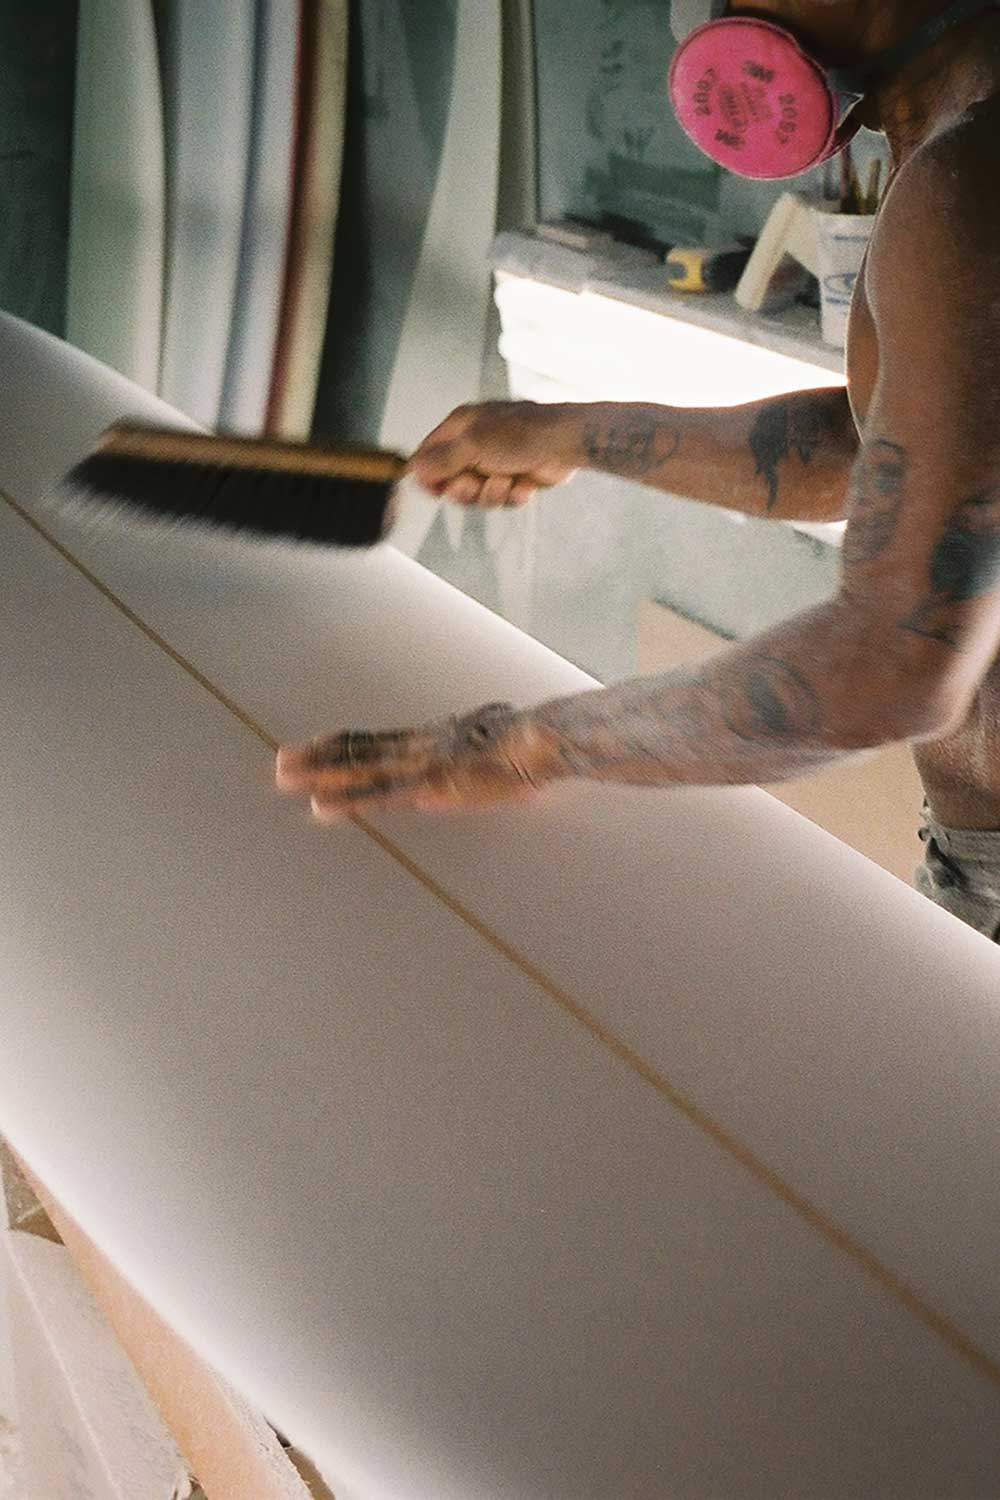 Toots brushing sawdust from surfboard